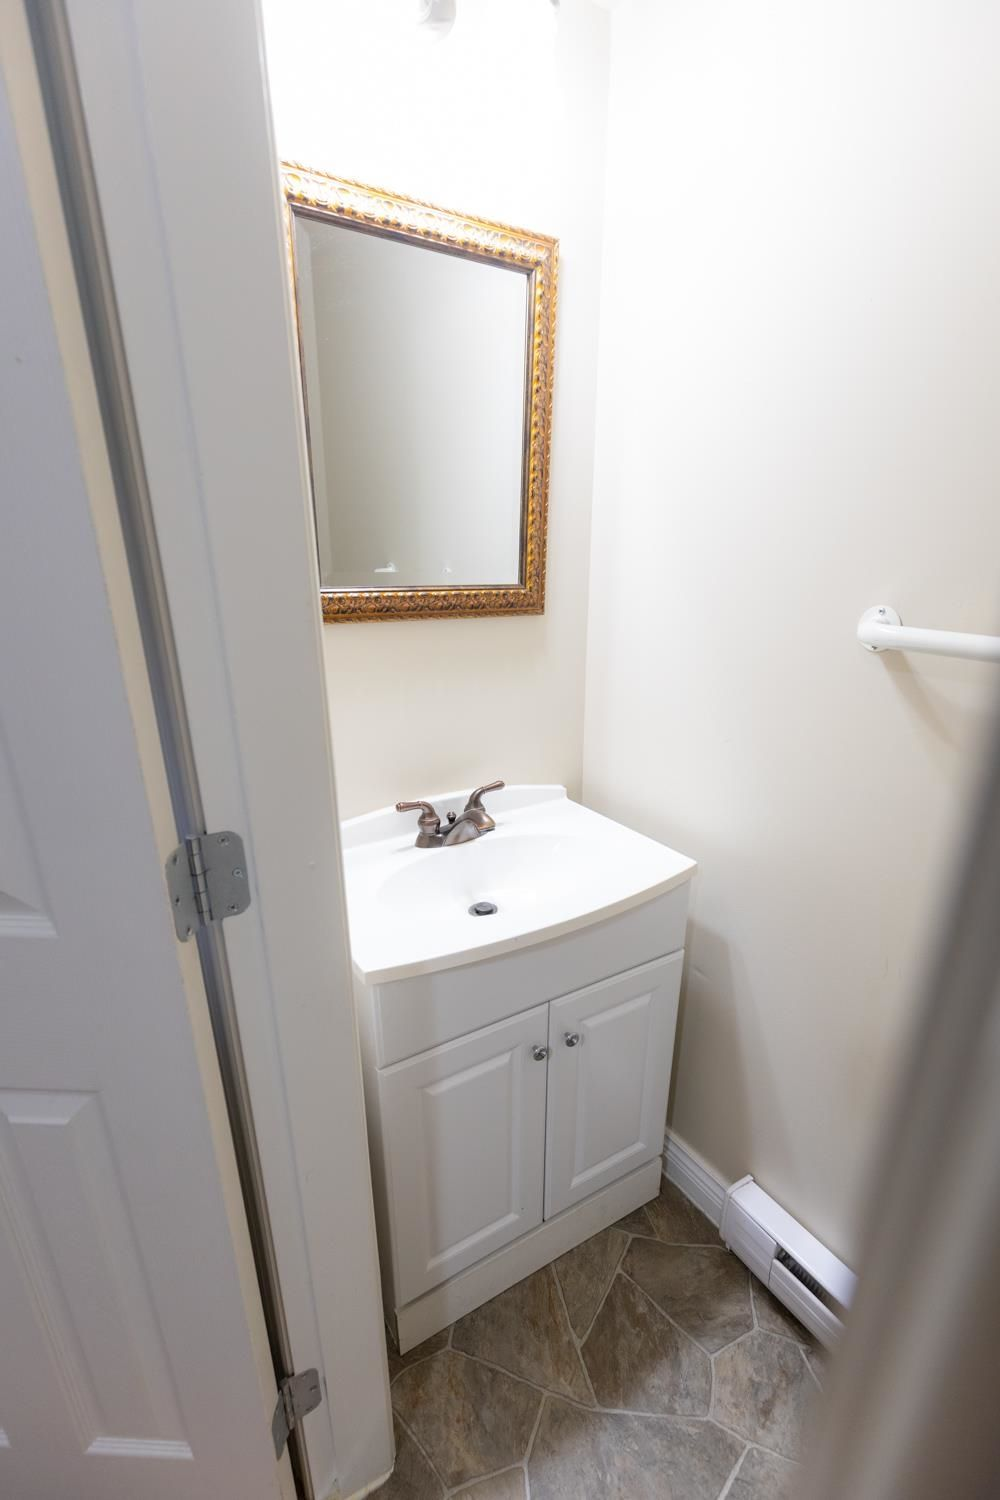 Photo 22: Photos: 2246 BEDFORD Place in Abbotsford: Abbotsford West House for sale : MLS®# R2602902